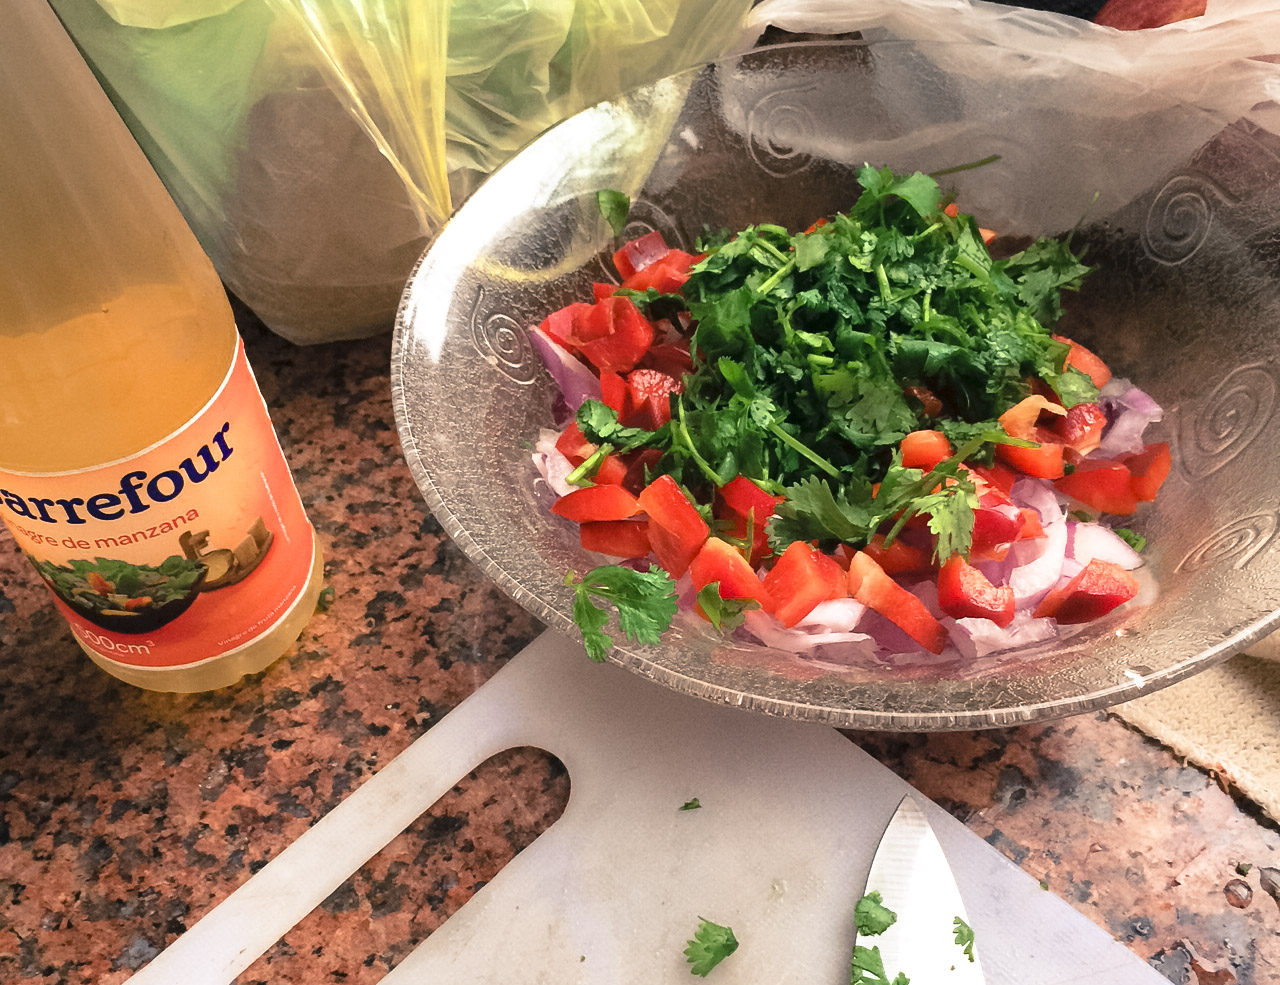 Home made salsa. Used 4 limes, a half bottle of white vinegar, a whole red onion, a huge red paprika, a big tomato, a long cucumber, a bunch of cilantro, and chopped garlic. I put two much fresh green chillies so it became too hot like a joke. サルサ。ライムは4つ、ヴィネガーは一本の半分ドバドバ。赤たまねぎに、赤パプリカ、トマトに黄瓜にシラントロ、あとは刻みにんにく。生唐辛子、入れすぎて、のどが痛いほどホットな新鮮サルサの出来上がり。